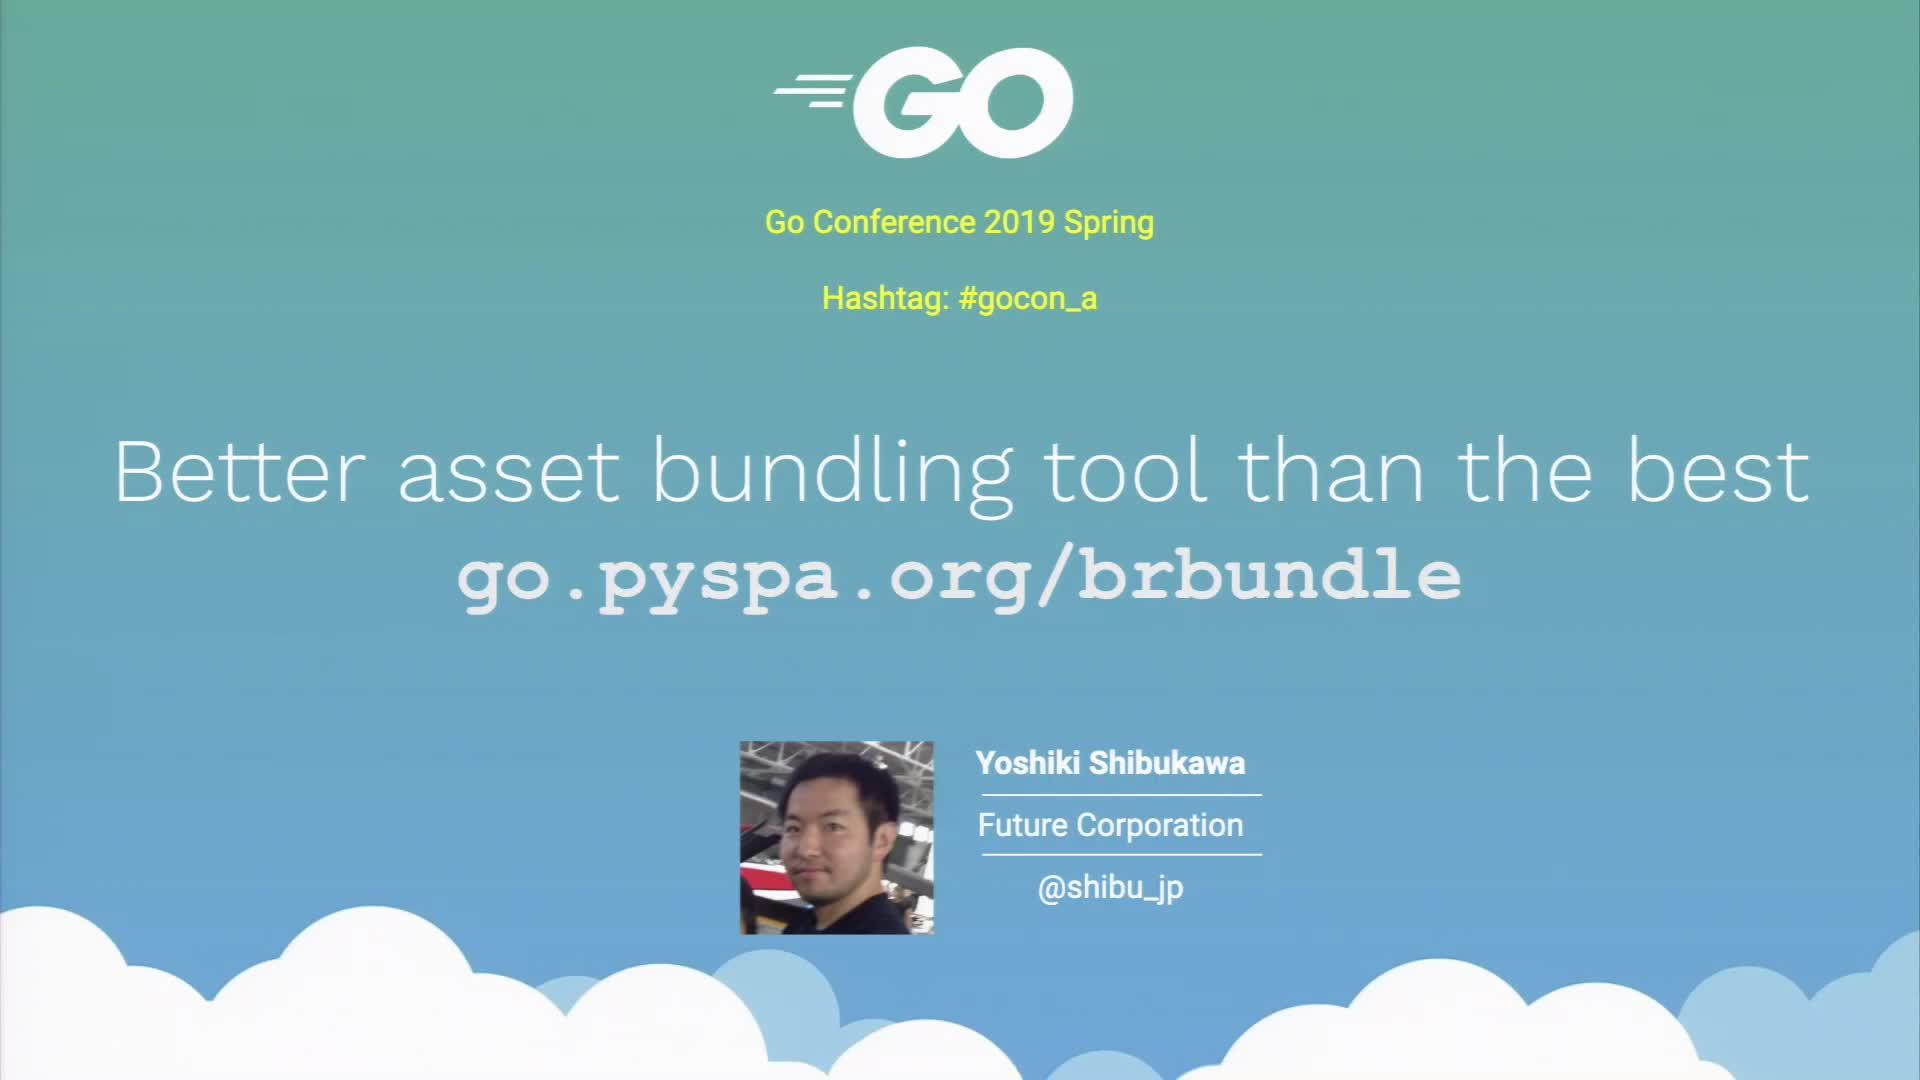 Better asset bundling tool than the best